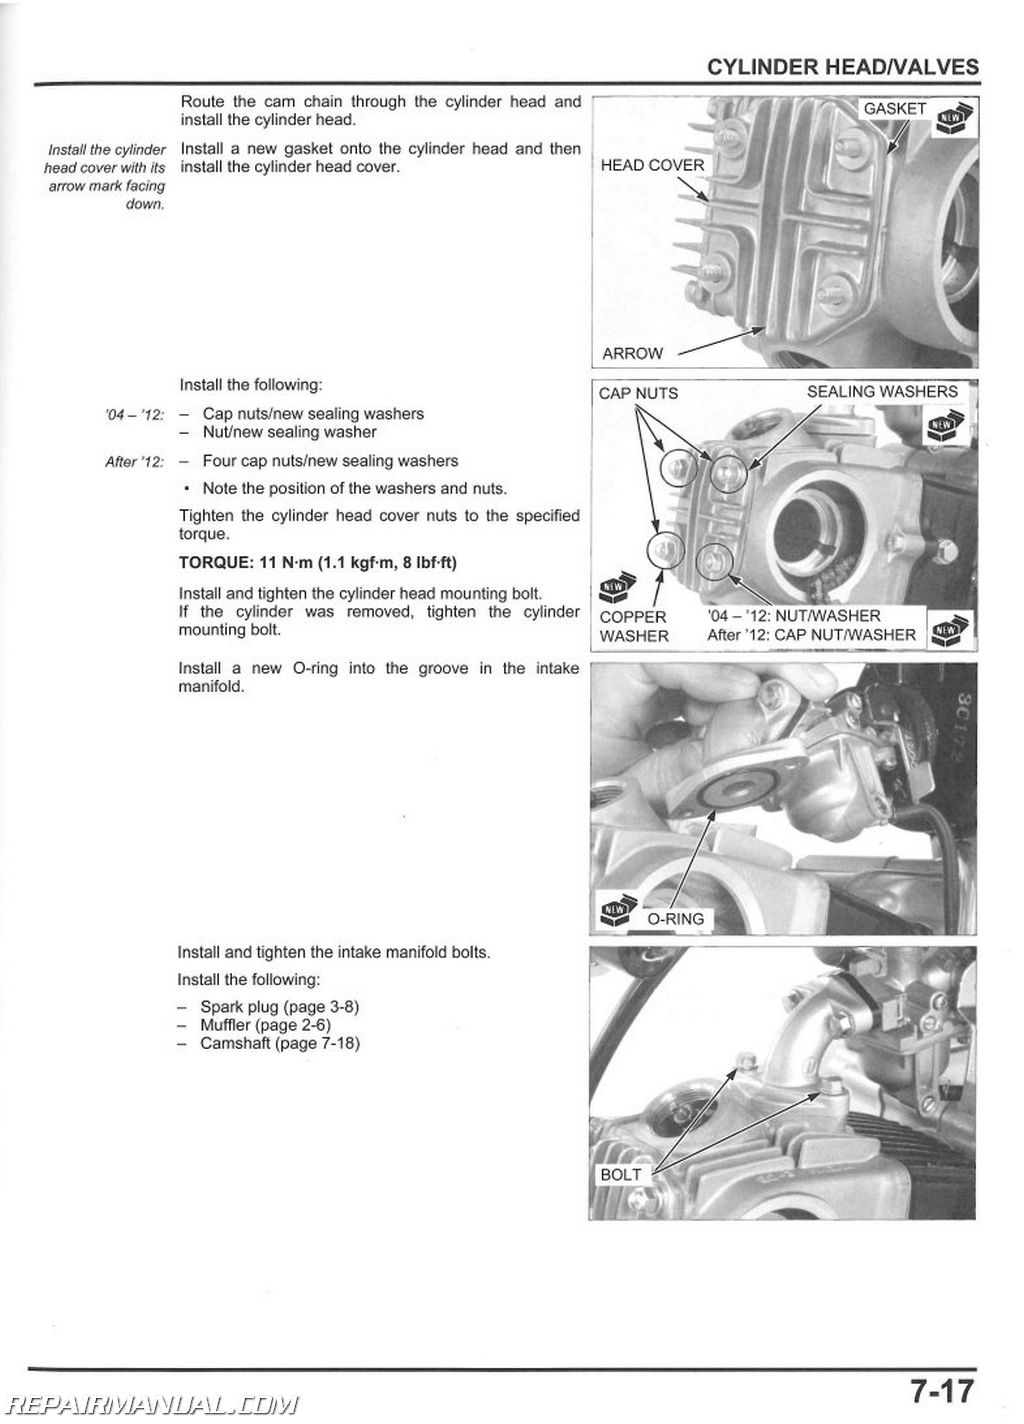 2004-2018 Honda CRF50F Motorcycle Service Manual